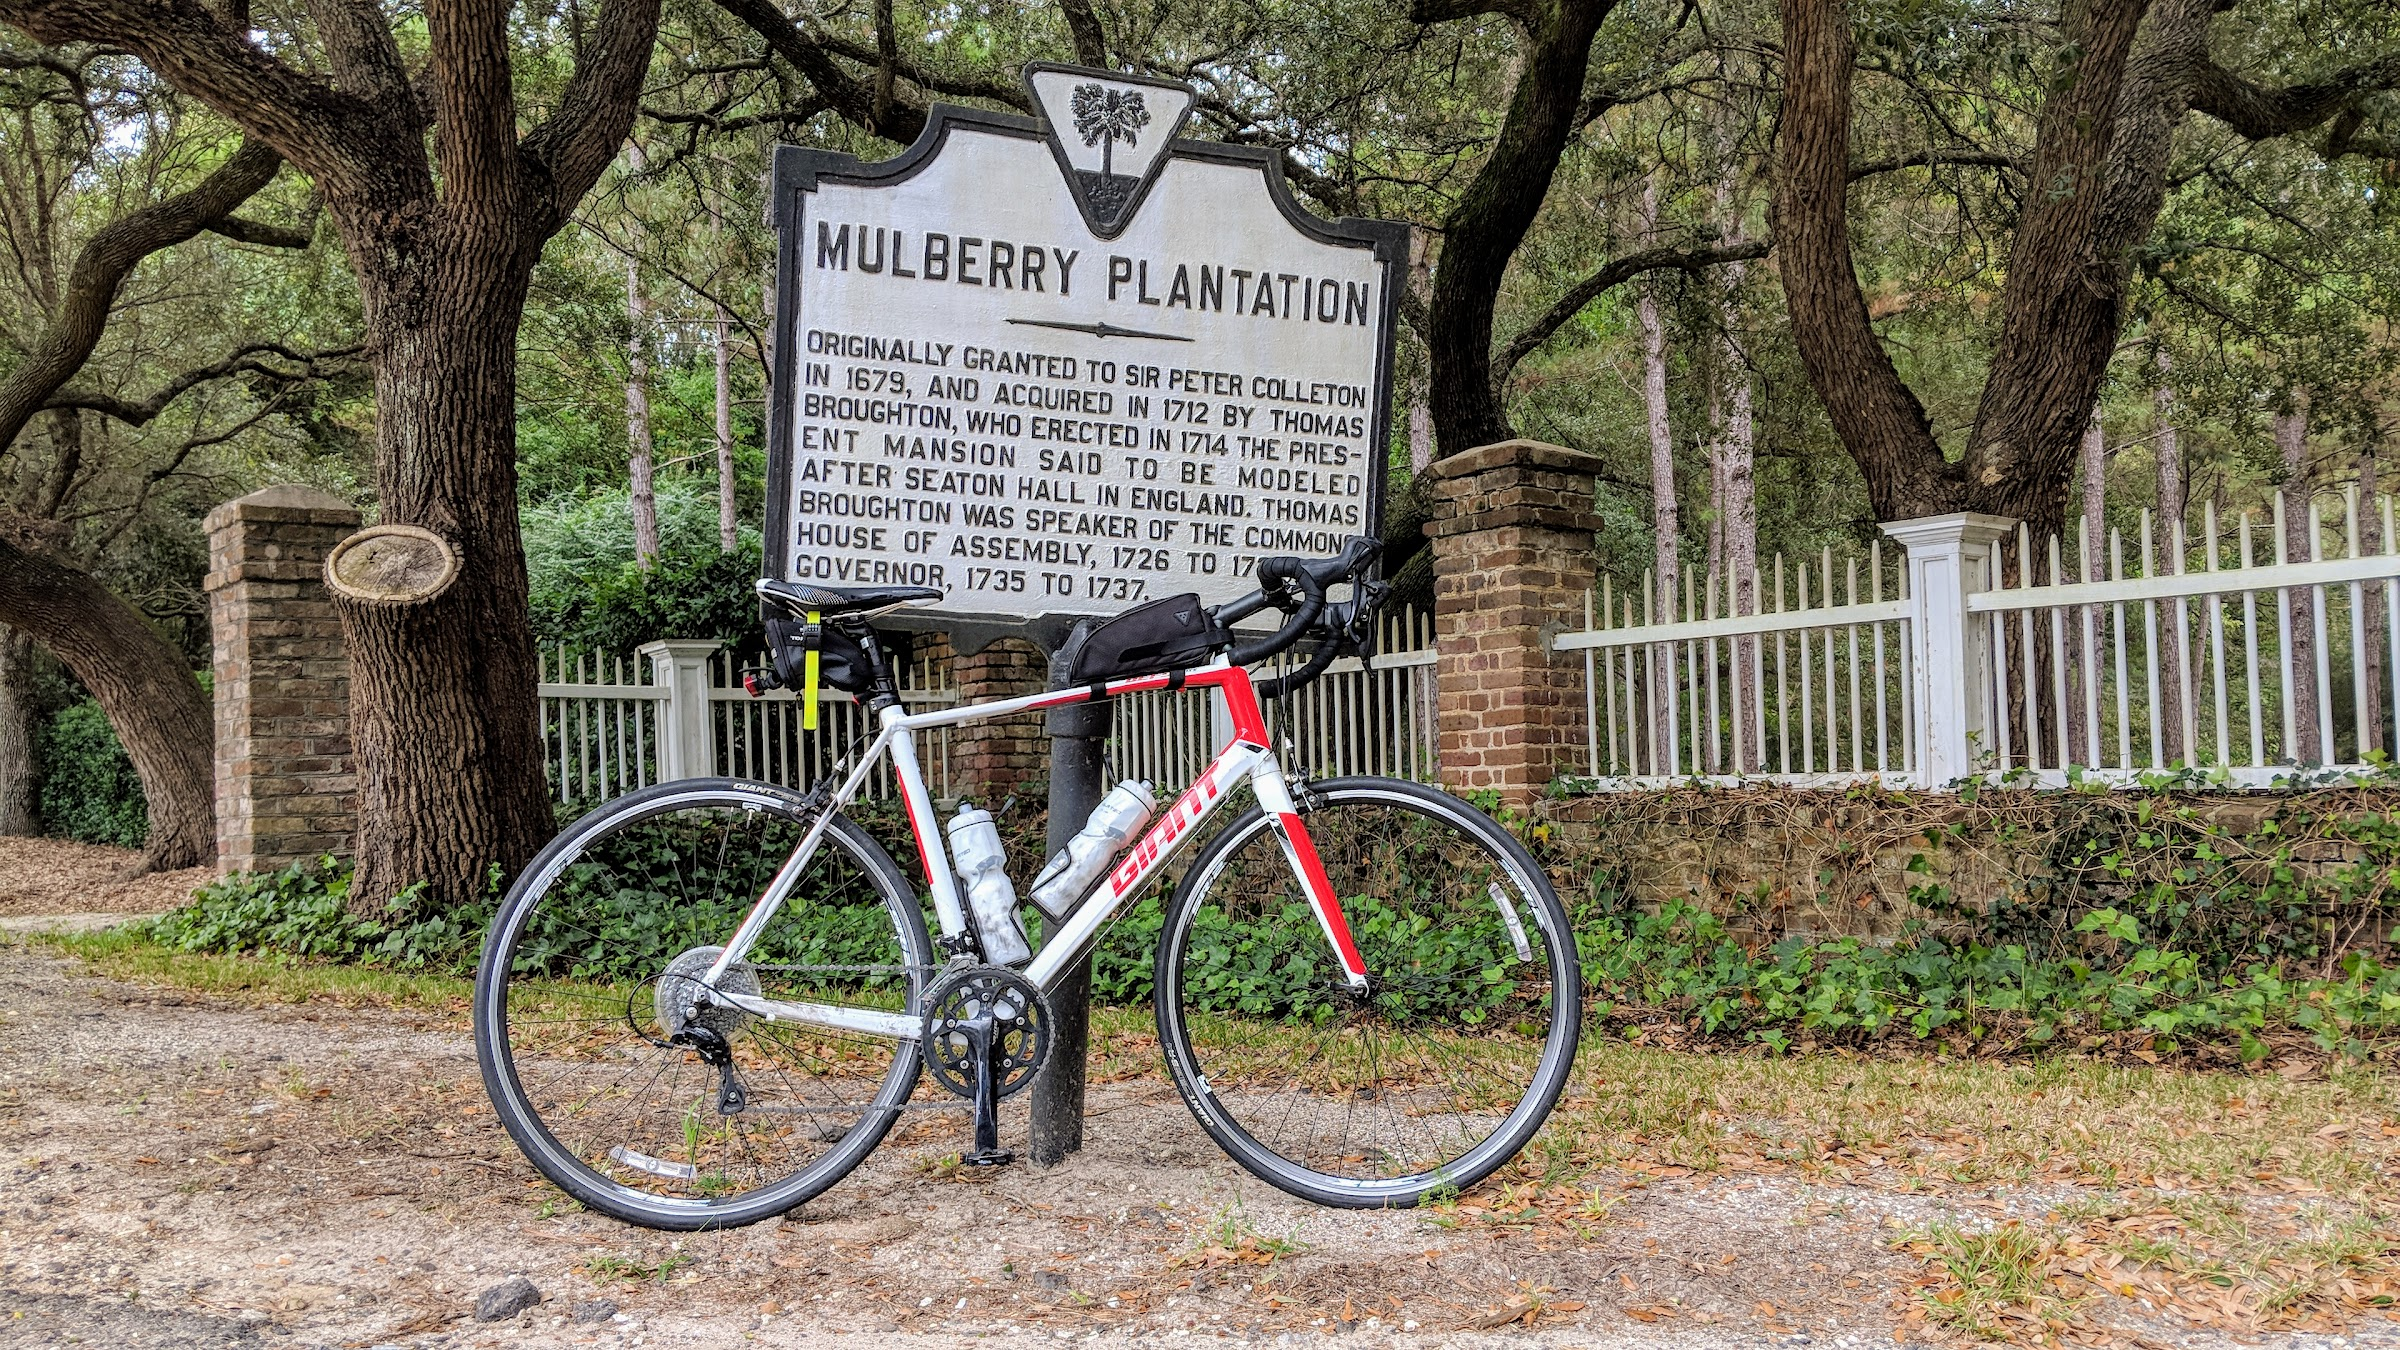 Bicycle Mulberry Plantation